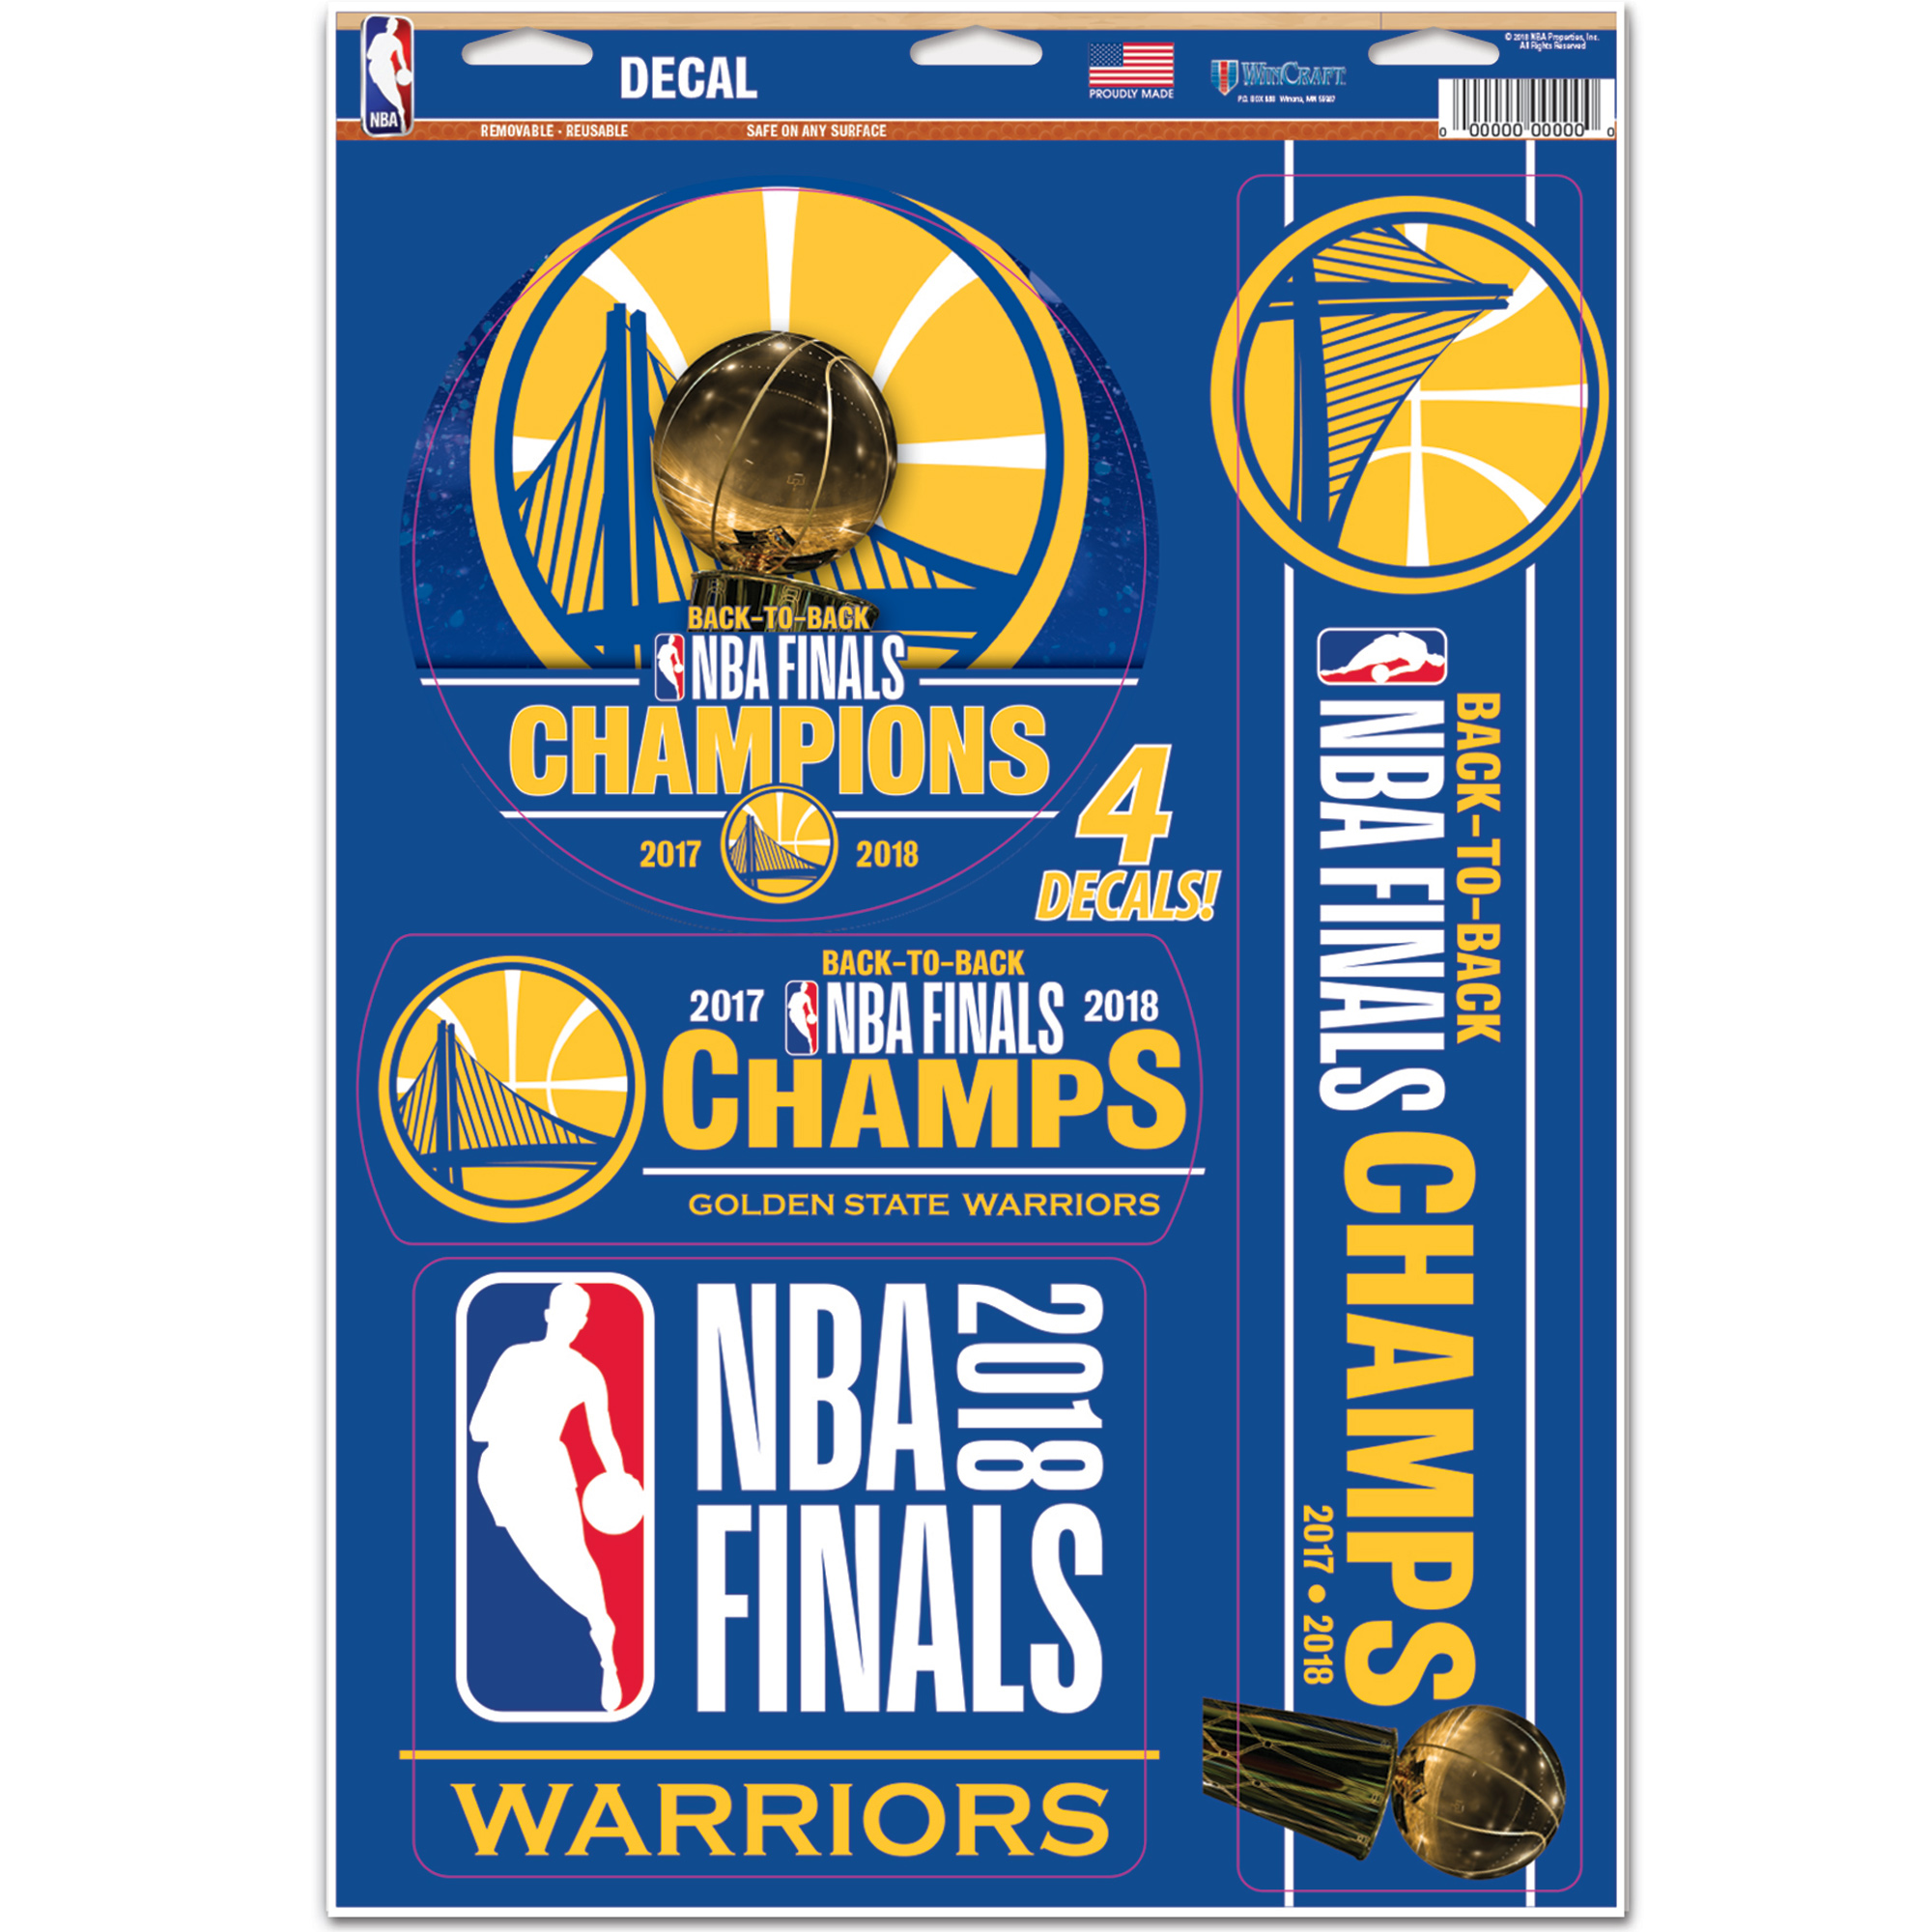 """Golden State Warriors WinCraft 2018 NBA Finals Champions 11"""" x 17"""" Multi-Use Decal Sheet - No Size"""